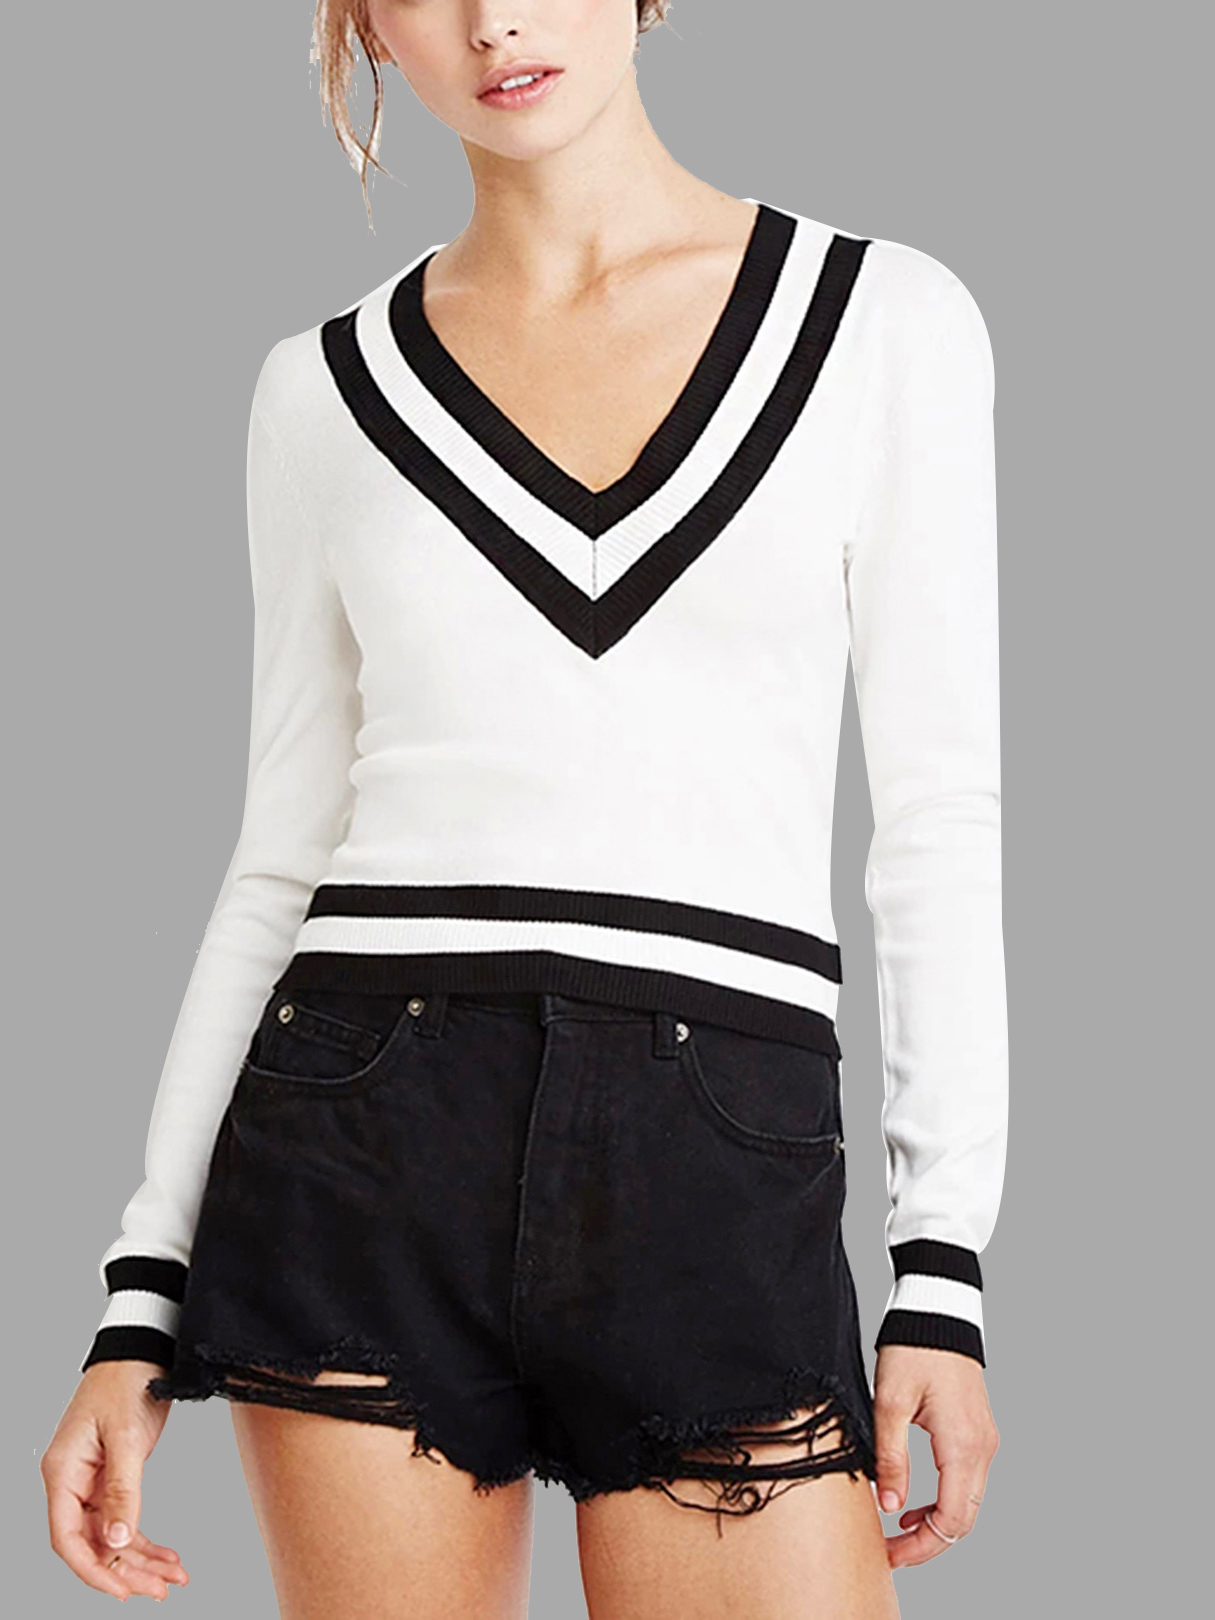 White Stripe V-neck Simple Jumper стоимость